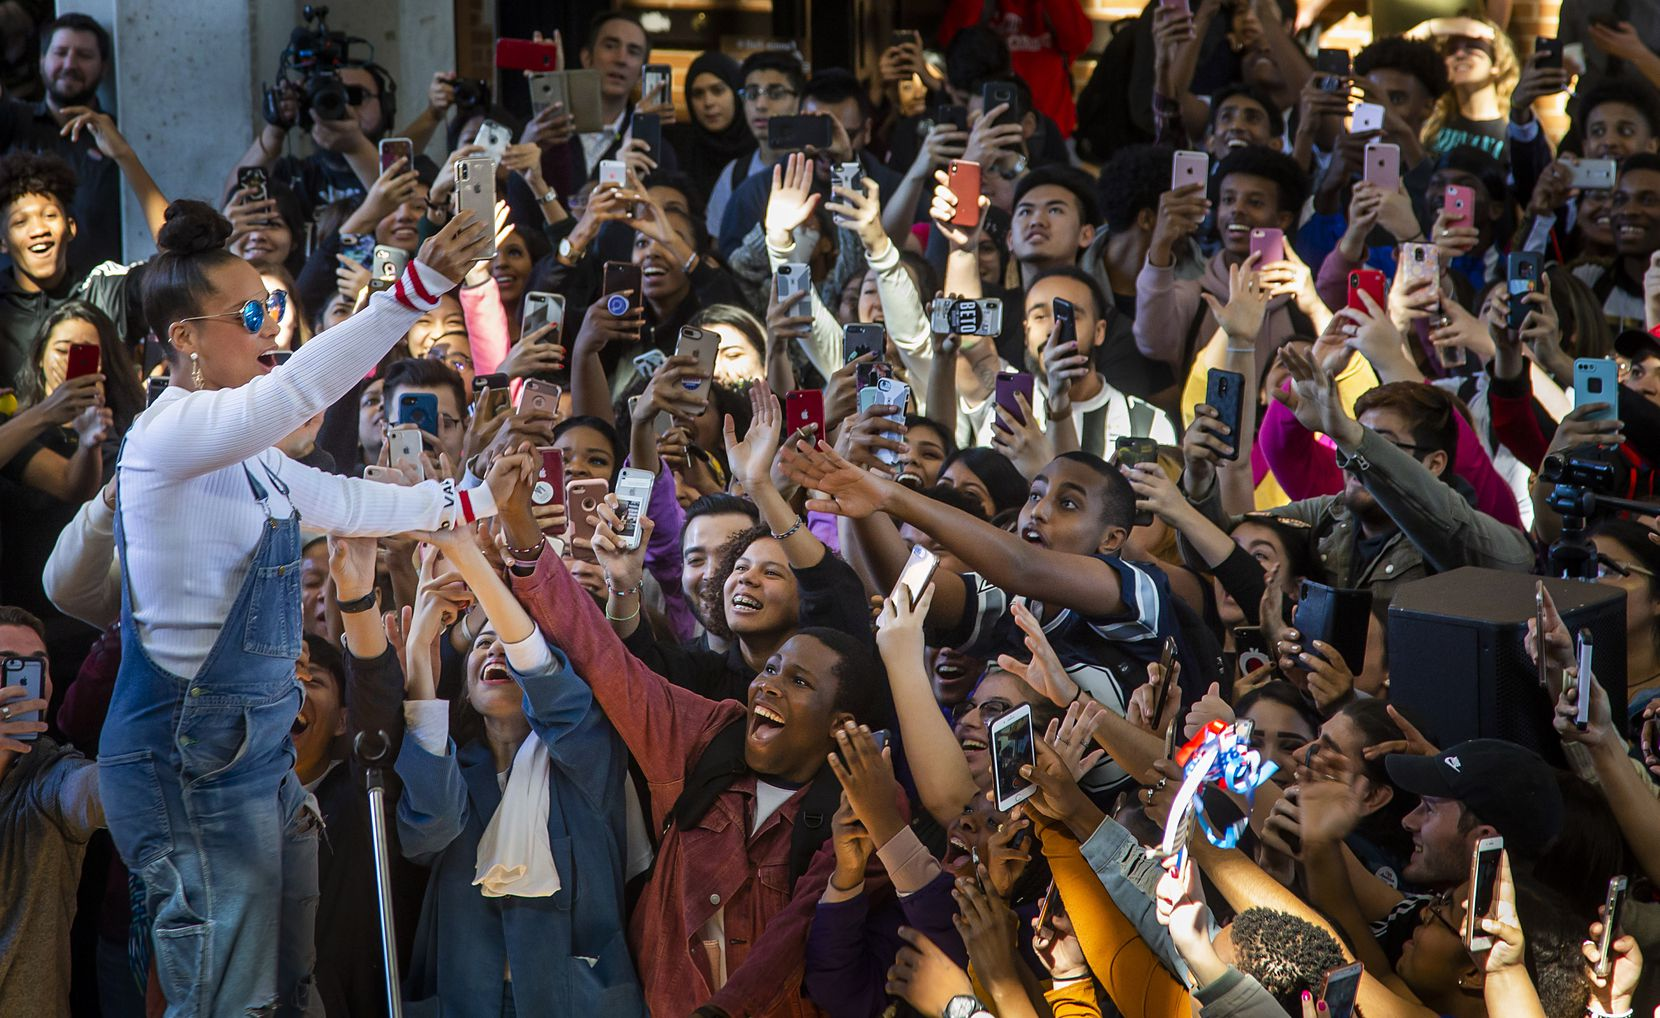 Singer Alicia Keys takes a selfie with the crowd during a youth voter rally at Richland College in Dallas on Oct. 23, 2018. Keys, joined ÒUgly BettyÓ star America Ferrera  and Liza Koshy for the event organized by Richland College Student Government Association, along with the Student Voter Initiative and Voto Latino. (Carly Geraci/The Dallas Morning News)